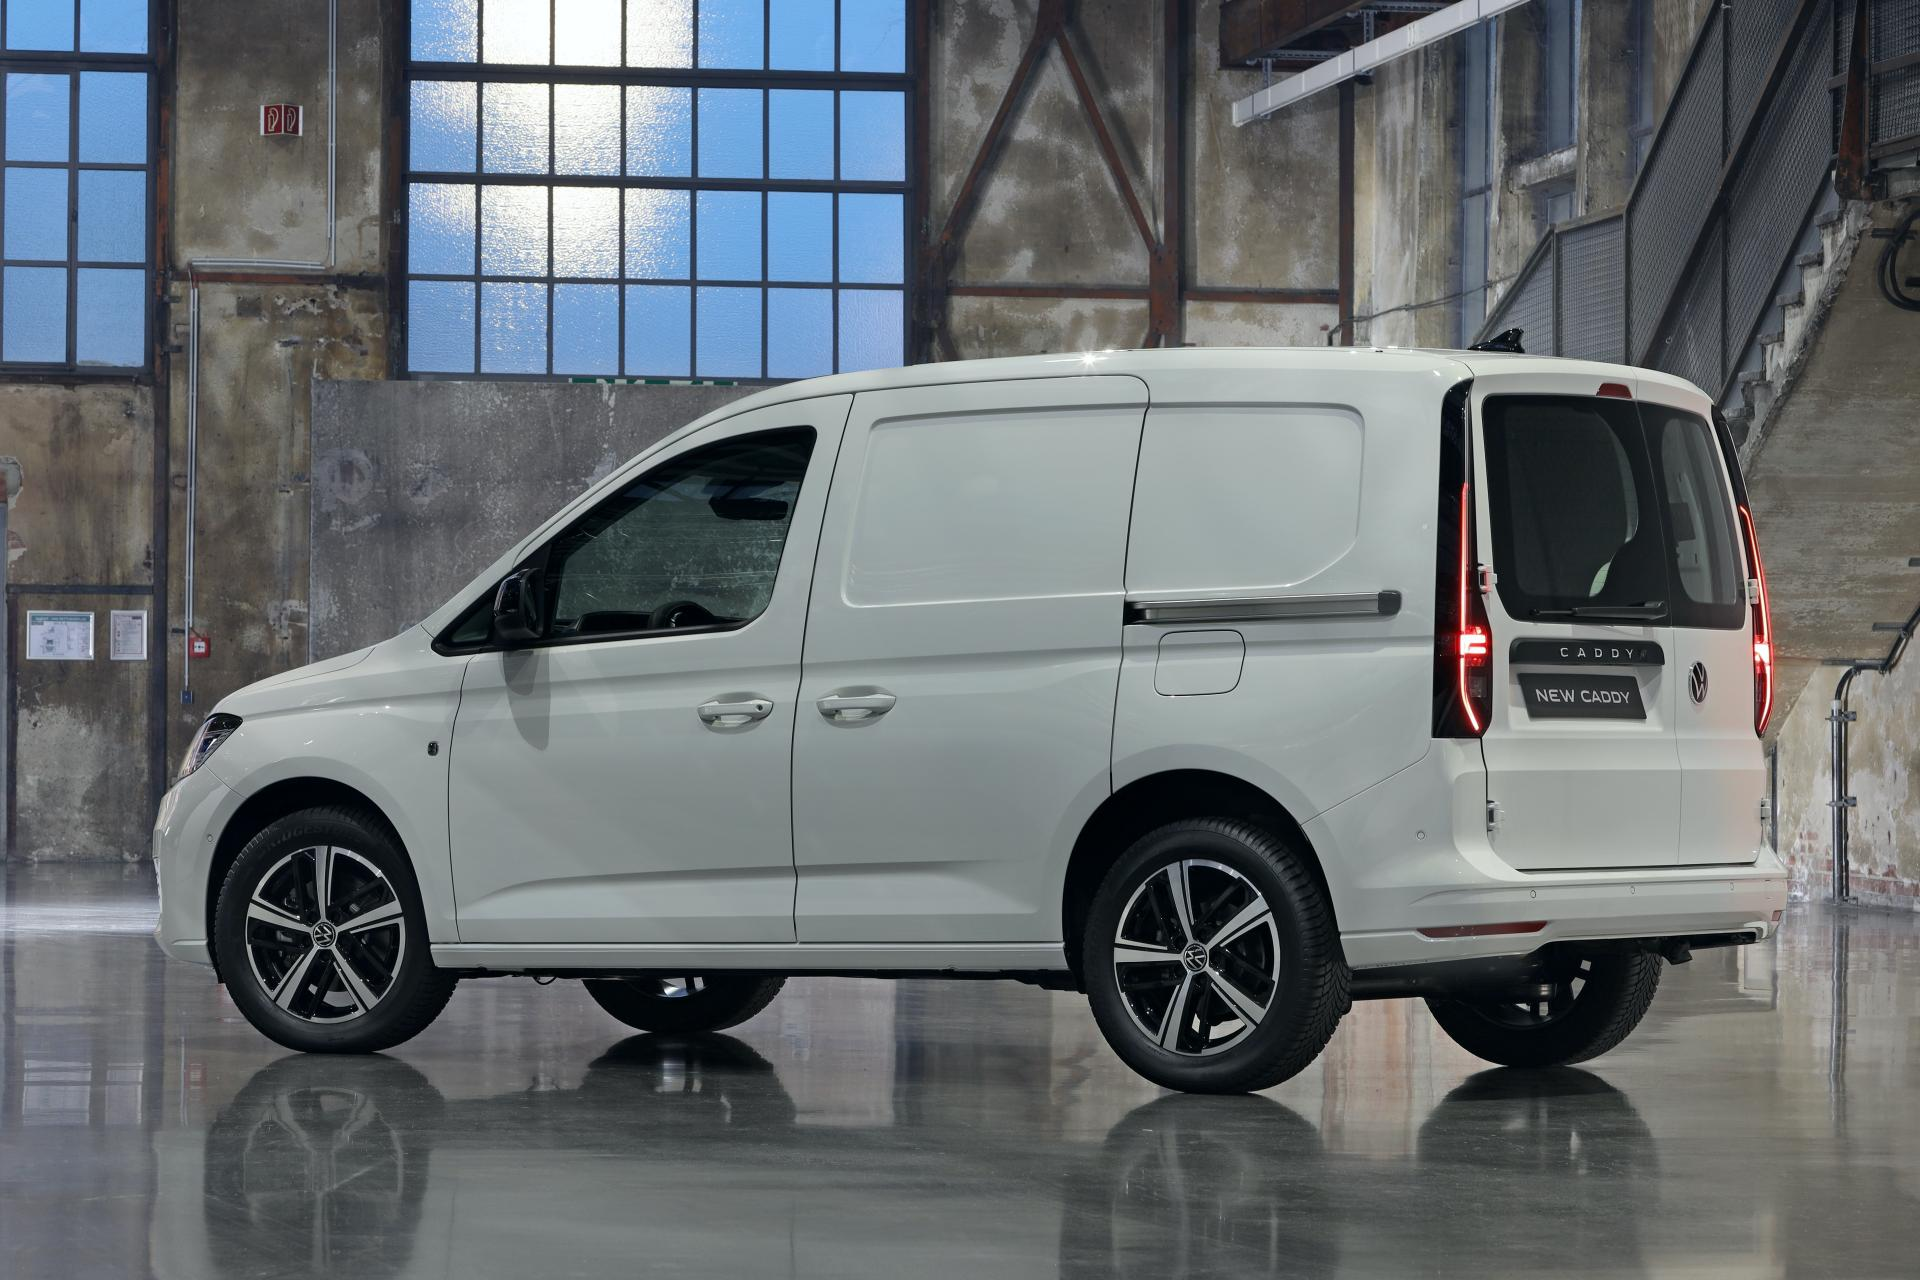 2021 volkswagen caddy revealed, low-spec model features